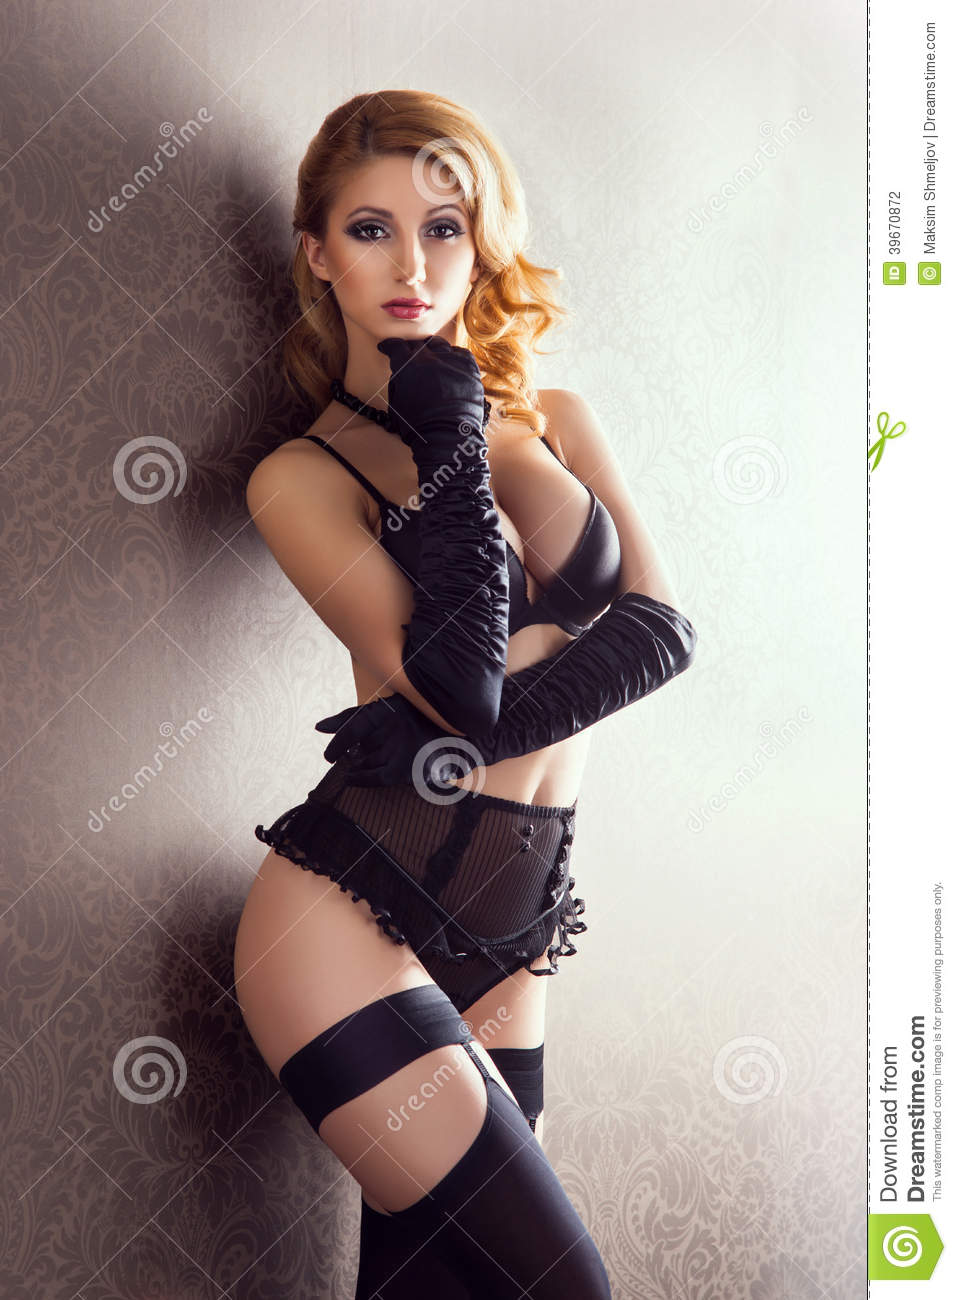 aaf1b8577 A Young And Woman Posing In Erotic Lingerie Stock Photo - Image of ...